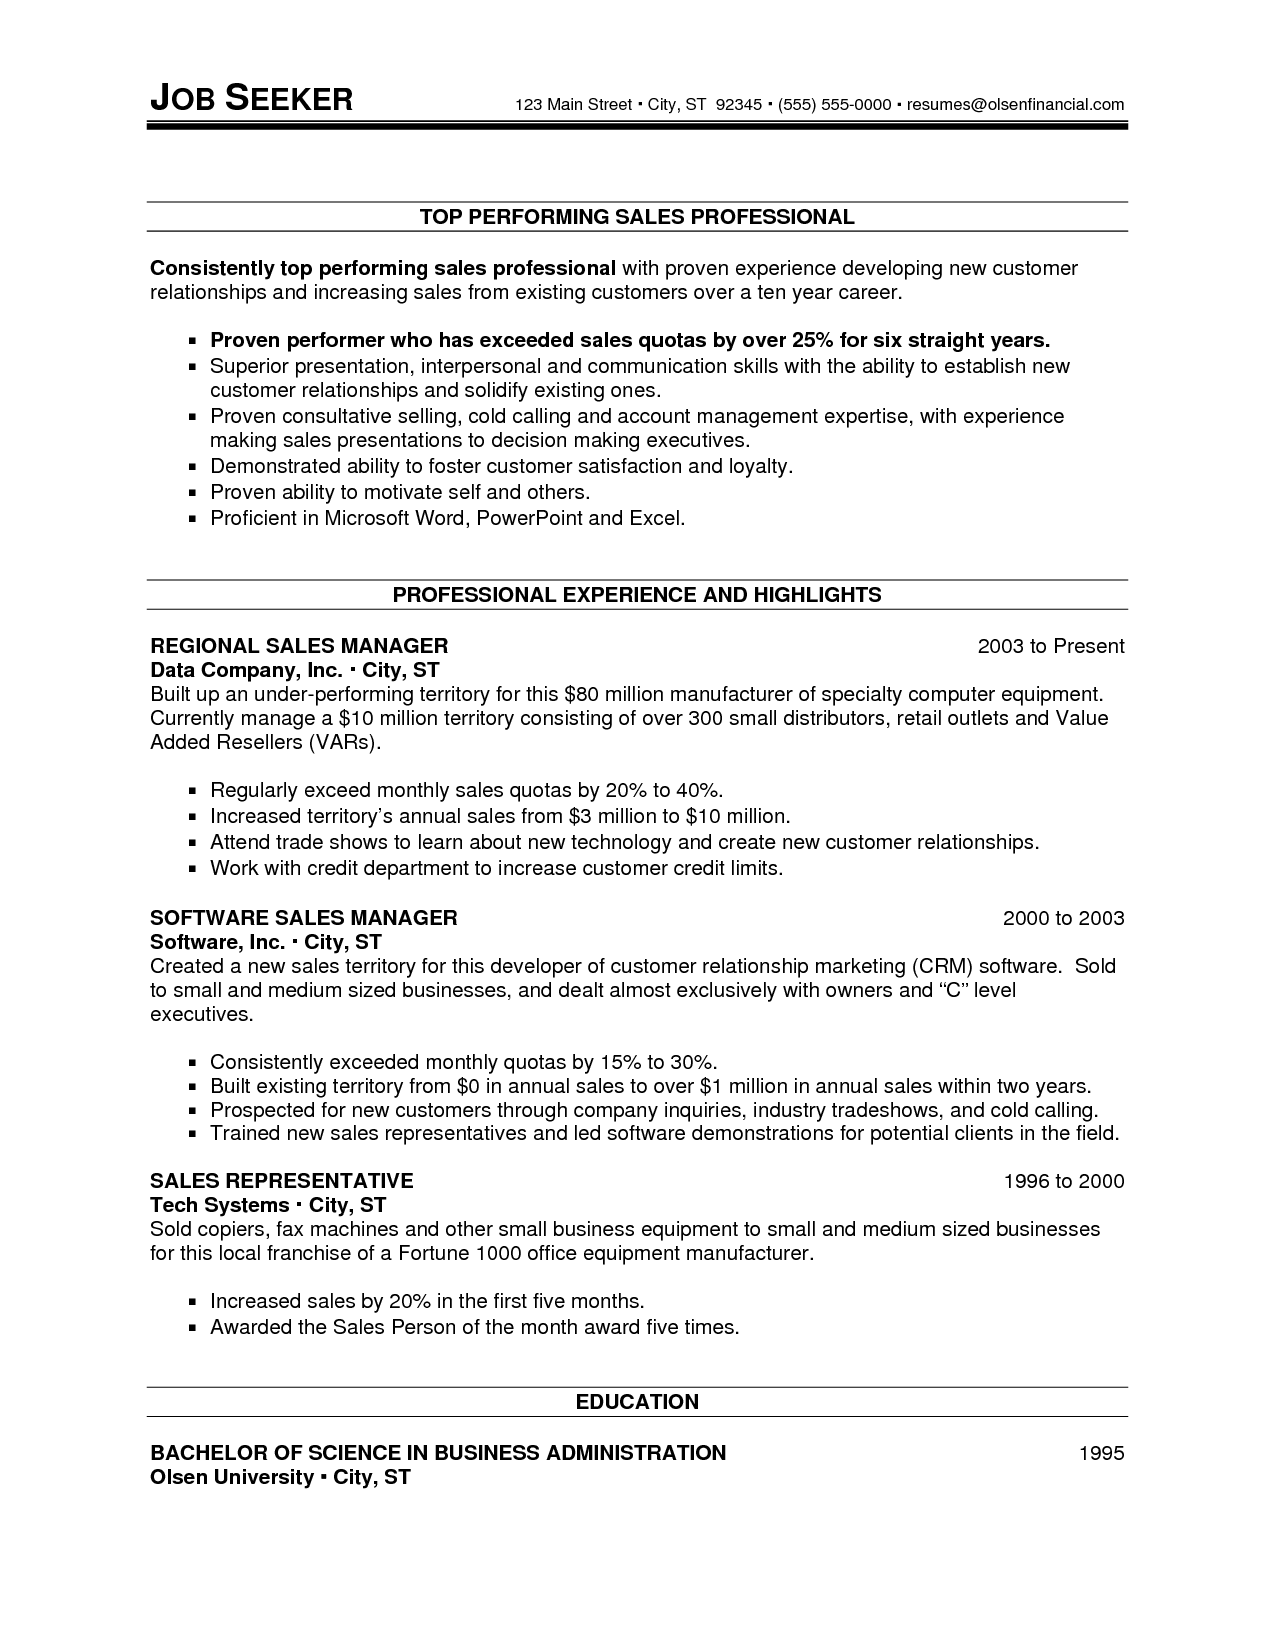 Resume For Highschool Students Copier Sales Resume Examples  Httpwwwresumecareercopier